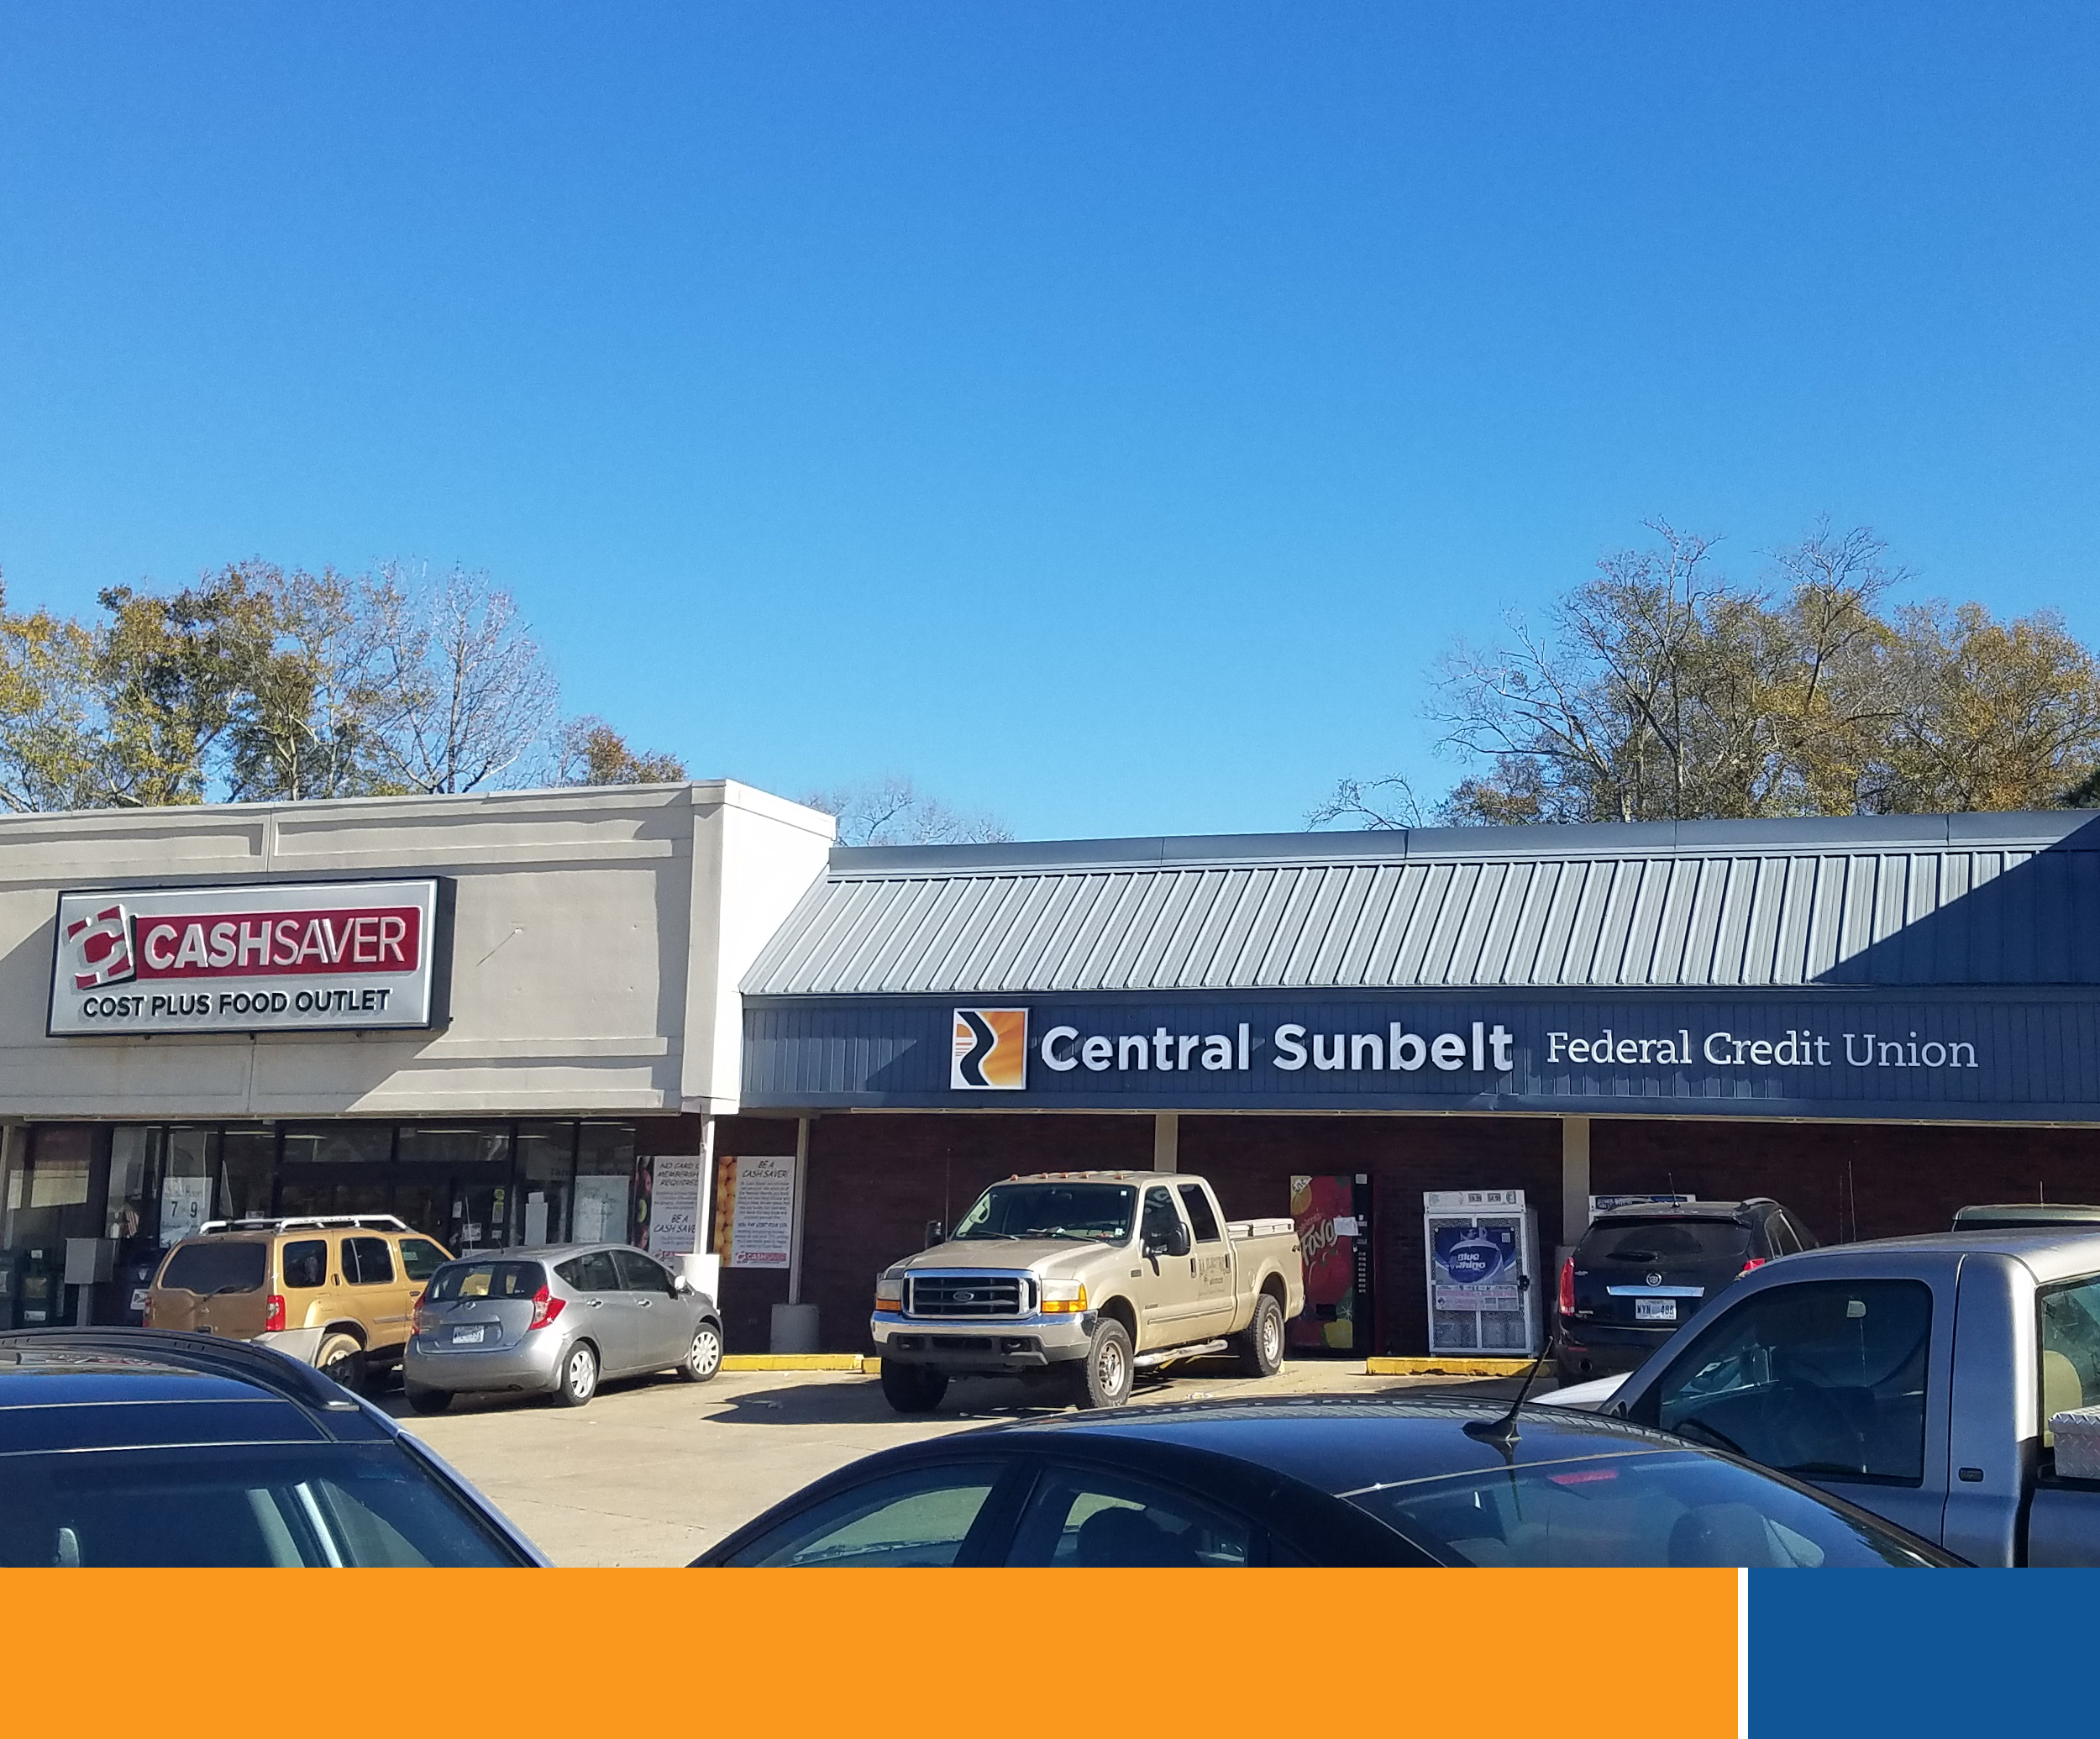 Central Sunbelt is celebrating their seventh full-service branch opening in Mississippi